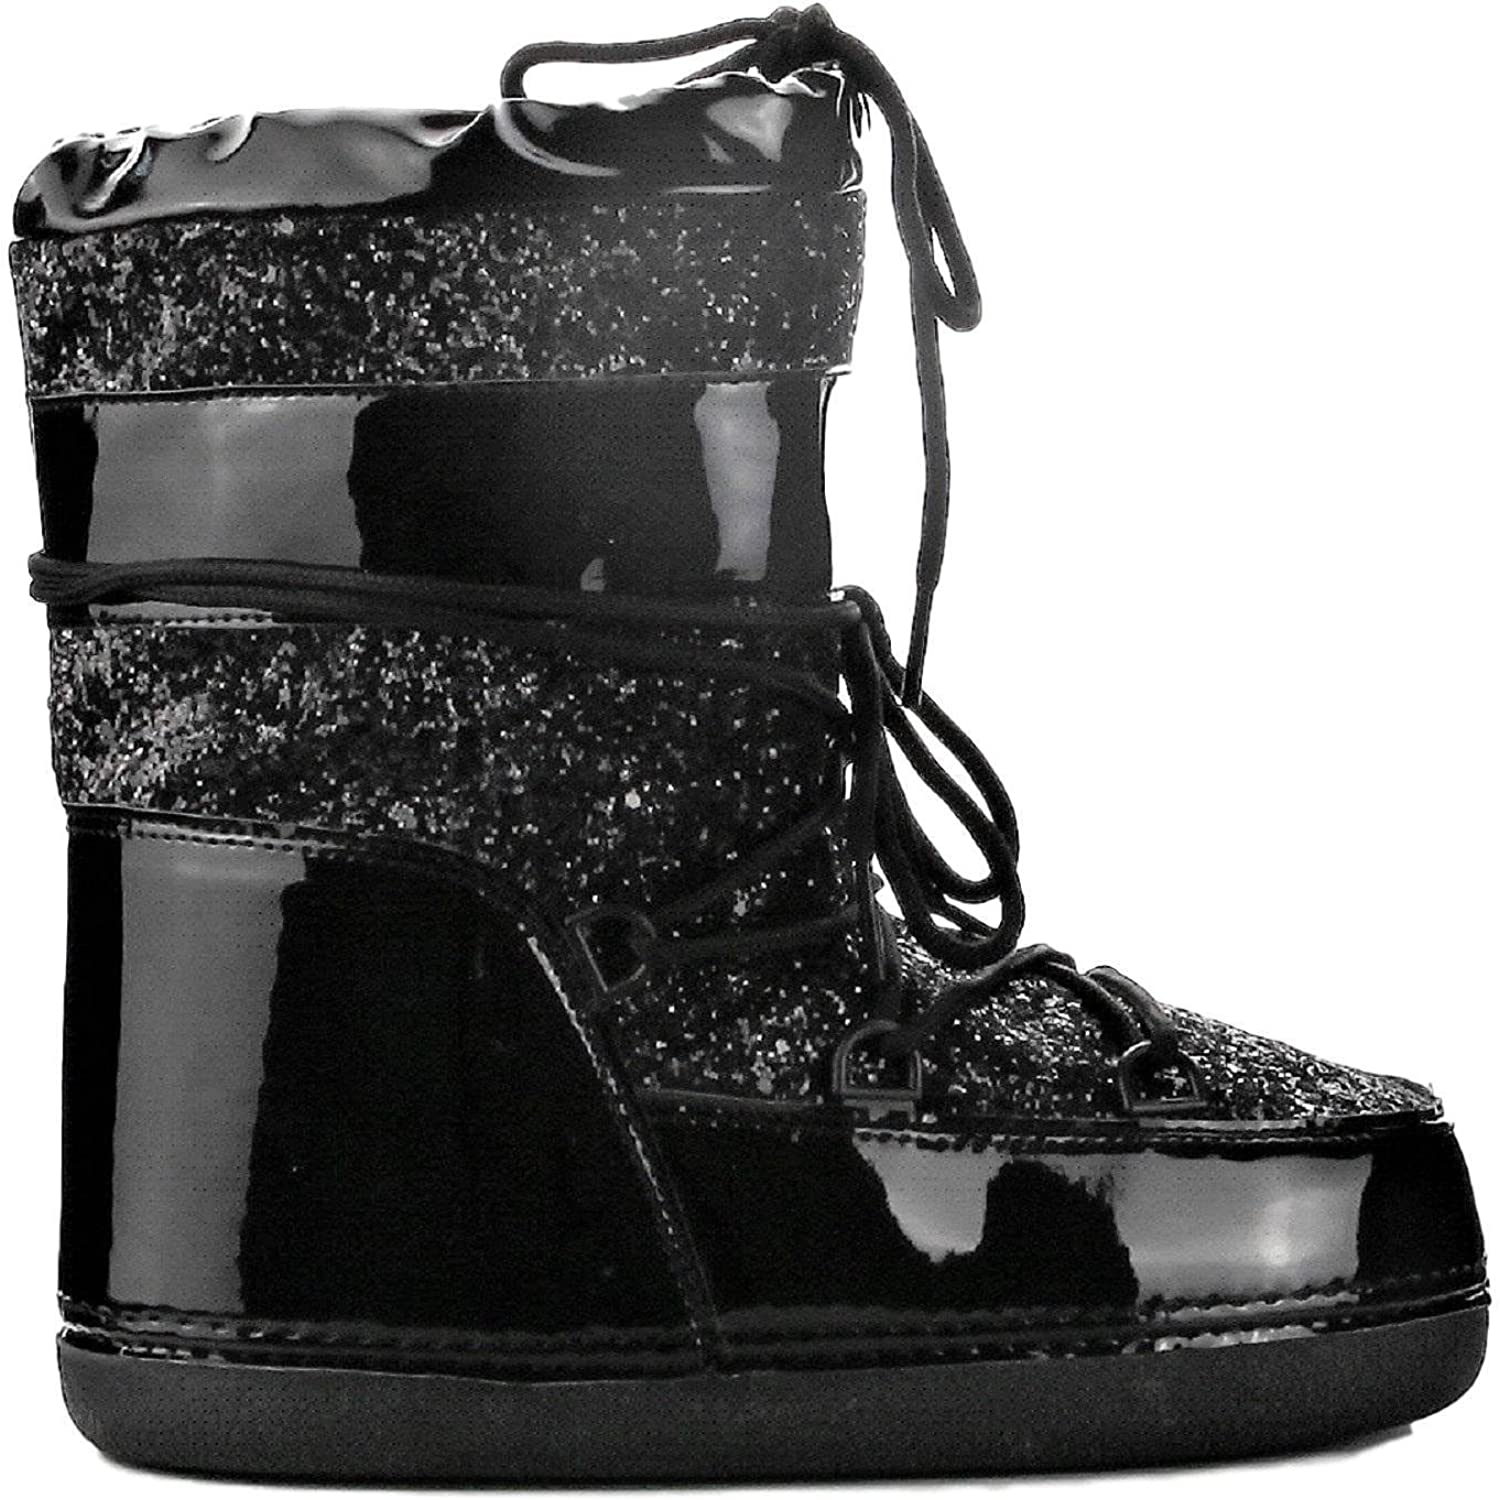 CAPE ROBBIN MB-11 Women Ankle High Ski Snow Winter Lace up Glitter Moon Boots Black